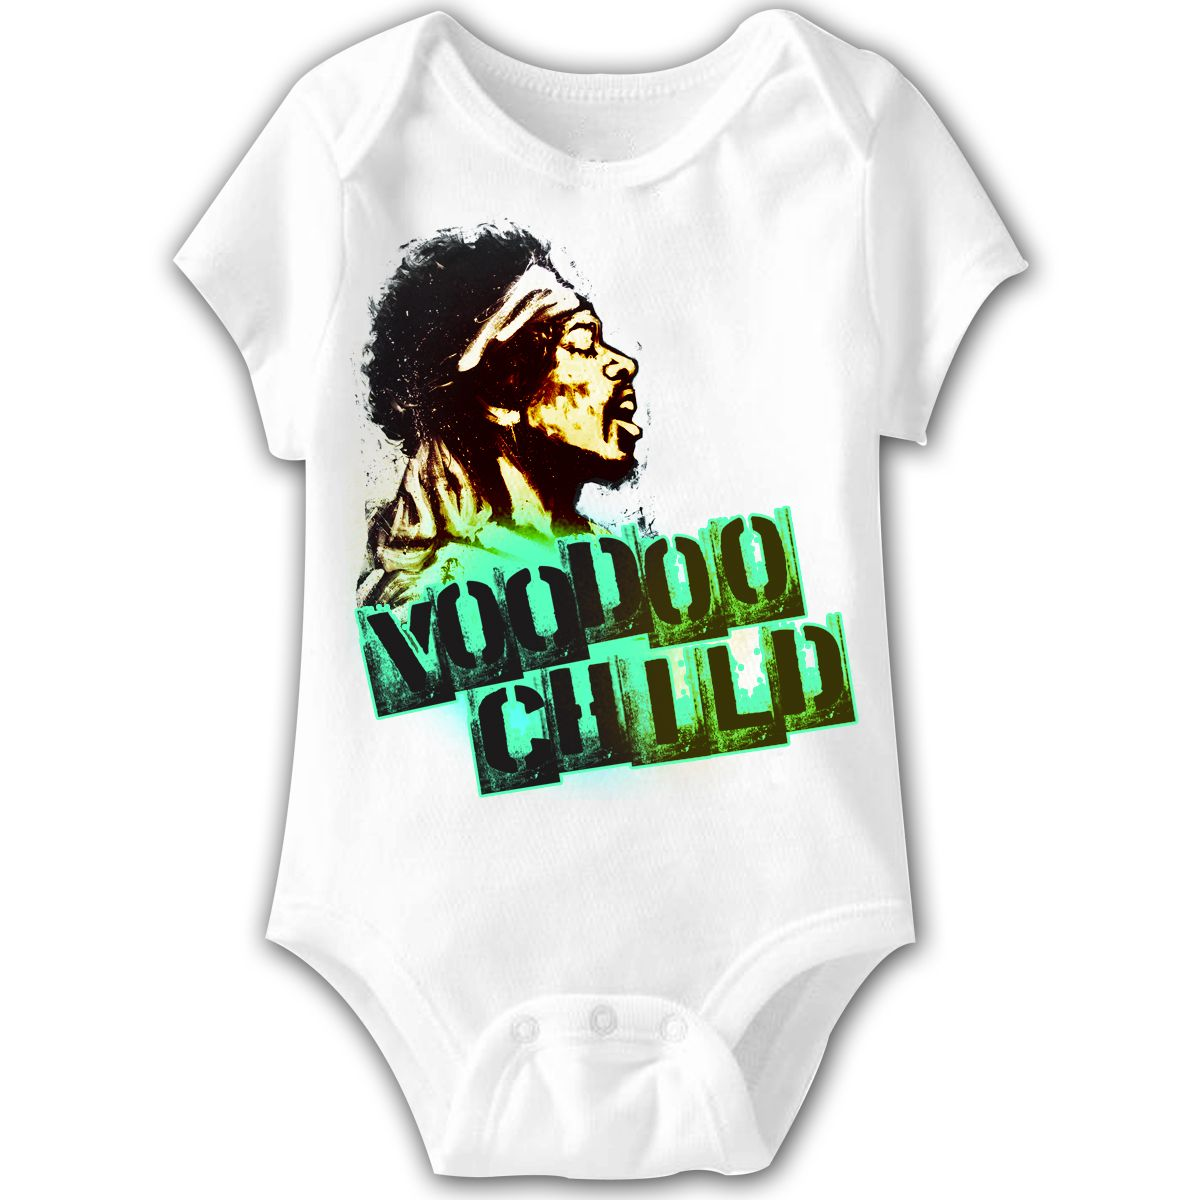 c786a57ff This Jimi Hendrix baby one piece features a drawn image of Hendrix with his  song title, Voodoo Child, written underneath. Made from 100% cotton, ...